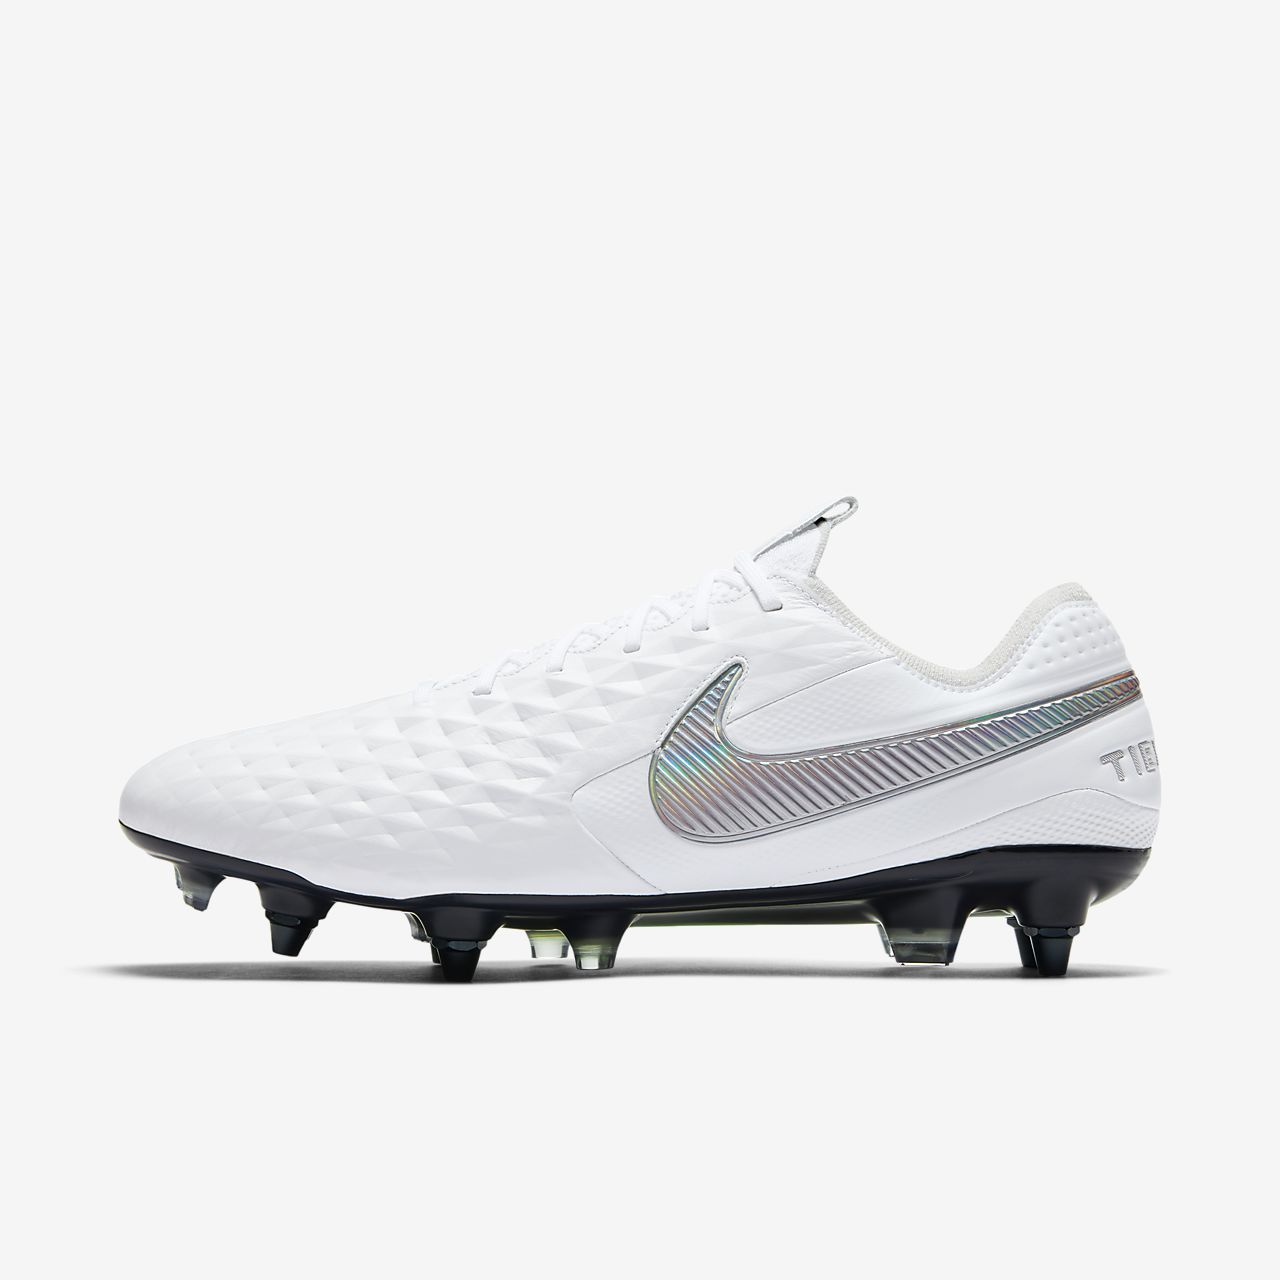 Scarpa da calcio per terreni morbidi Nike Tiempo Legend 8 Elite SG-PRO Anti-Clog Traction